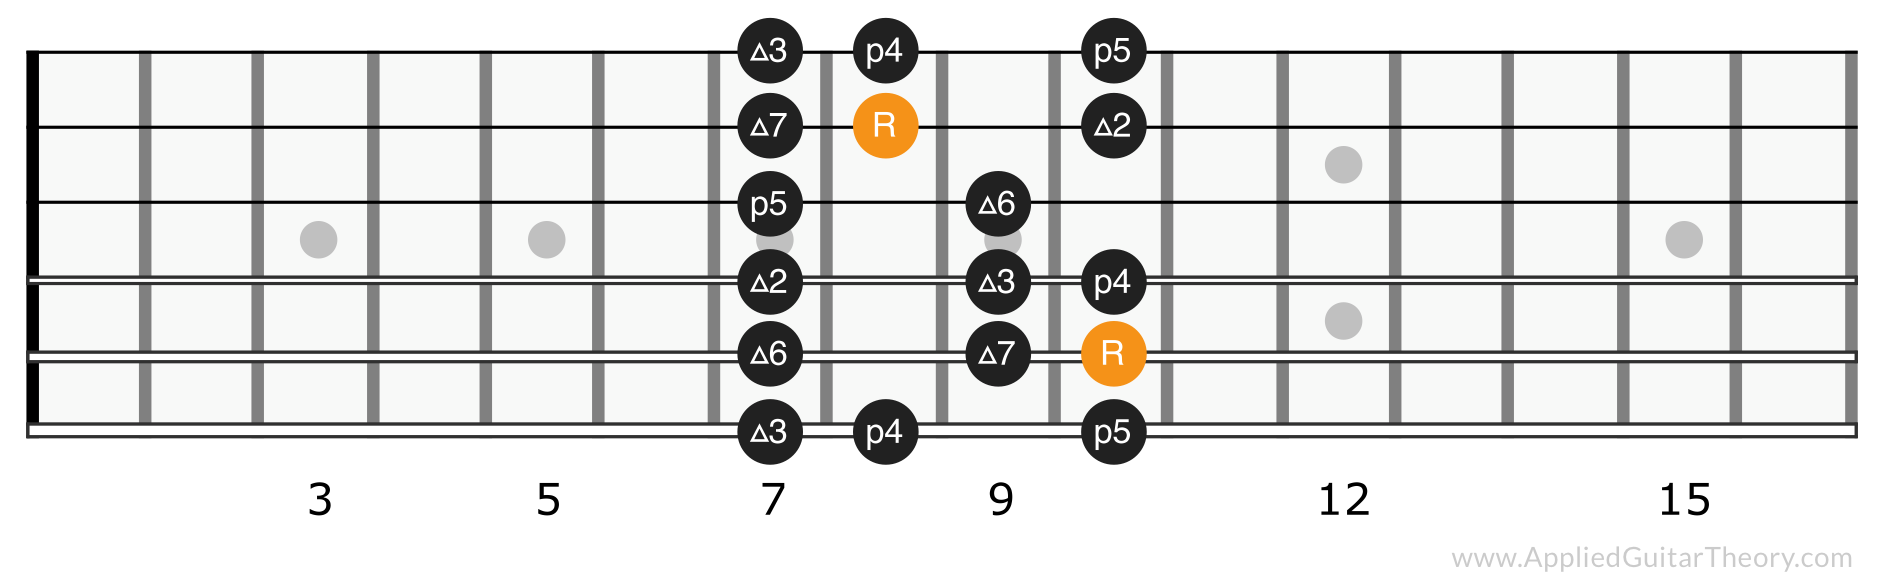 Major scale position 3